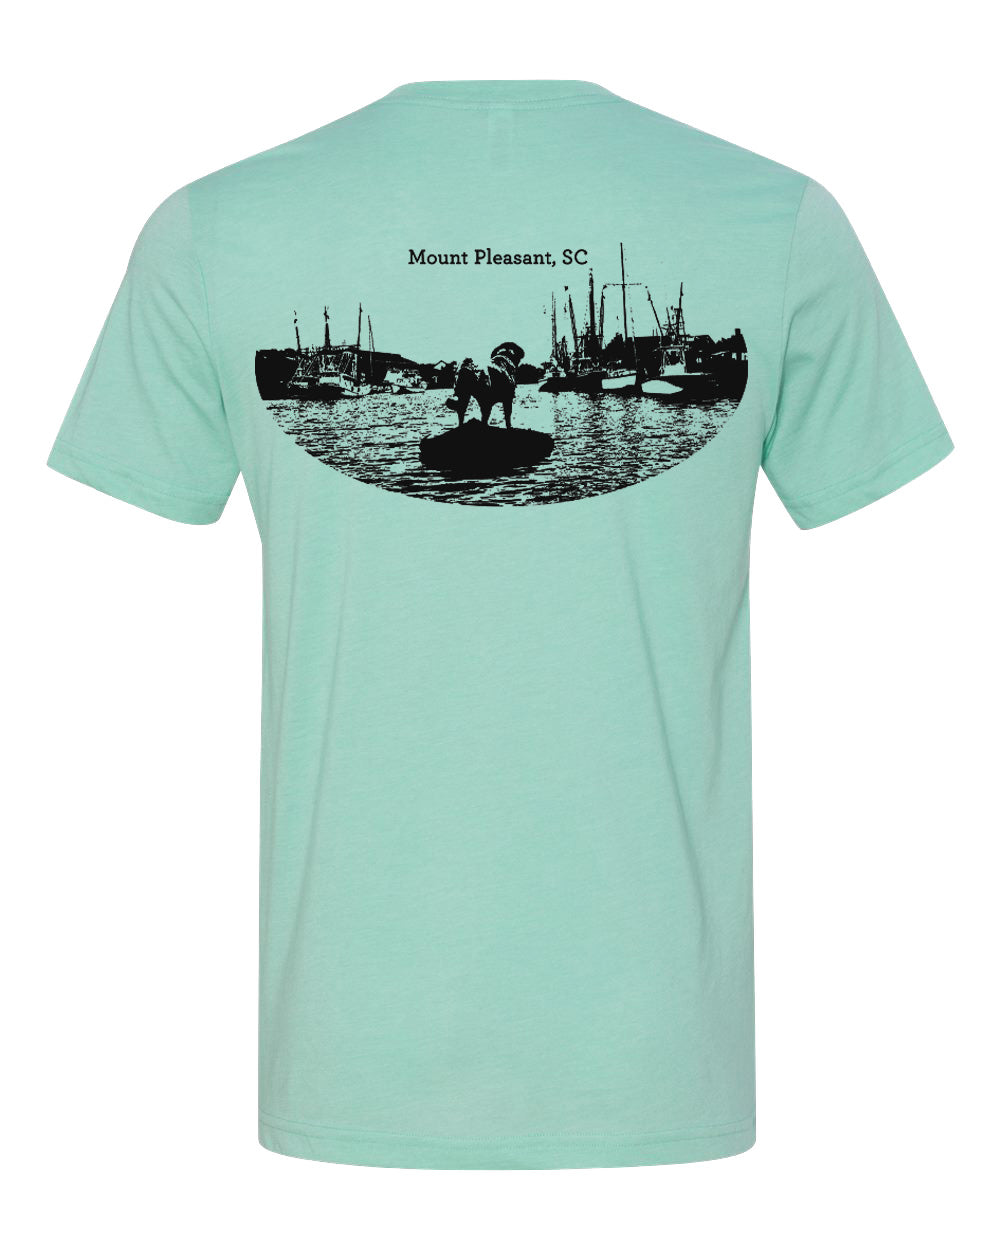 Mt. Pleasant Short Sleeve T-shirt